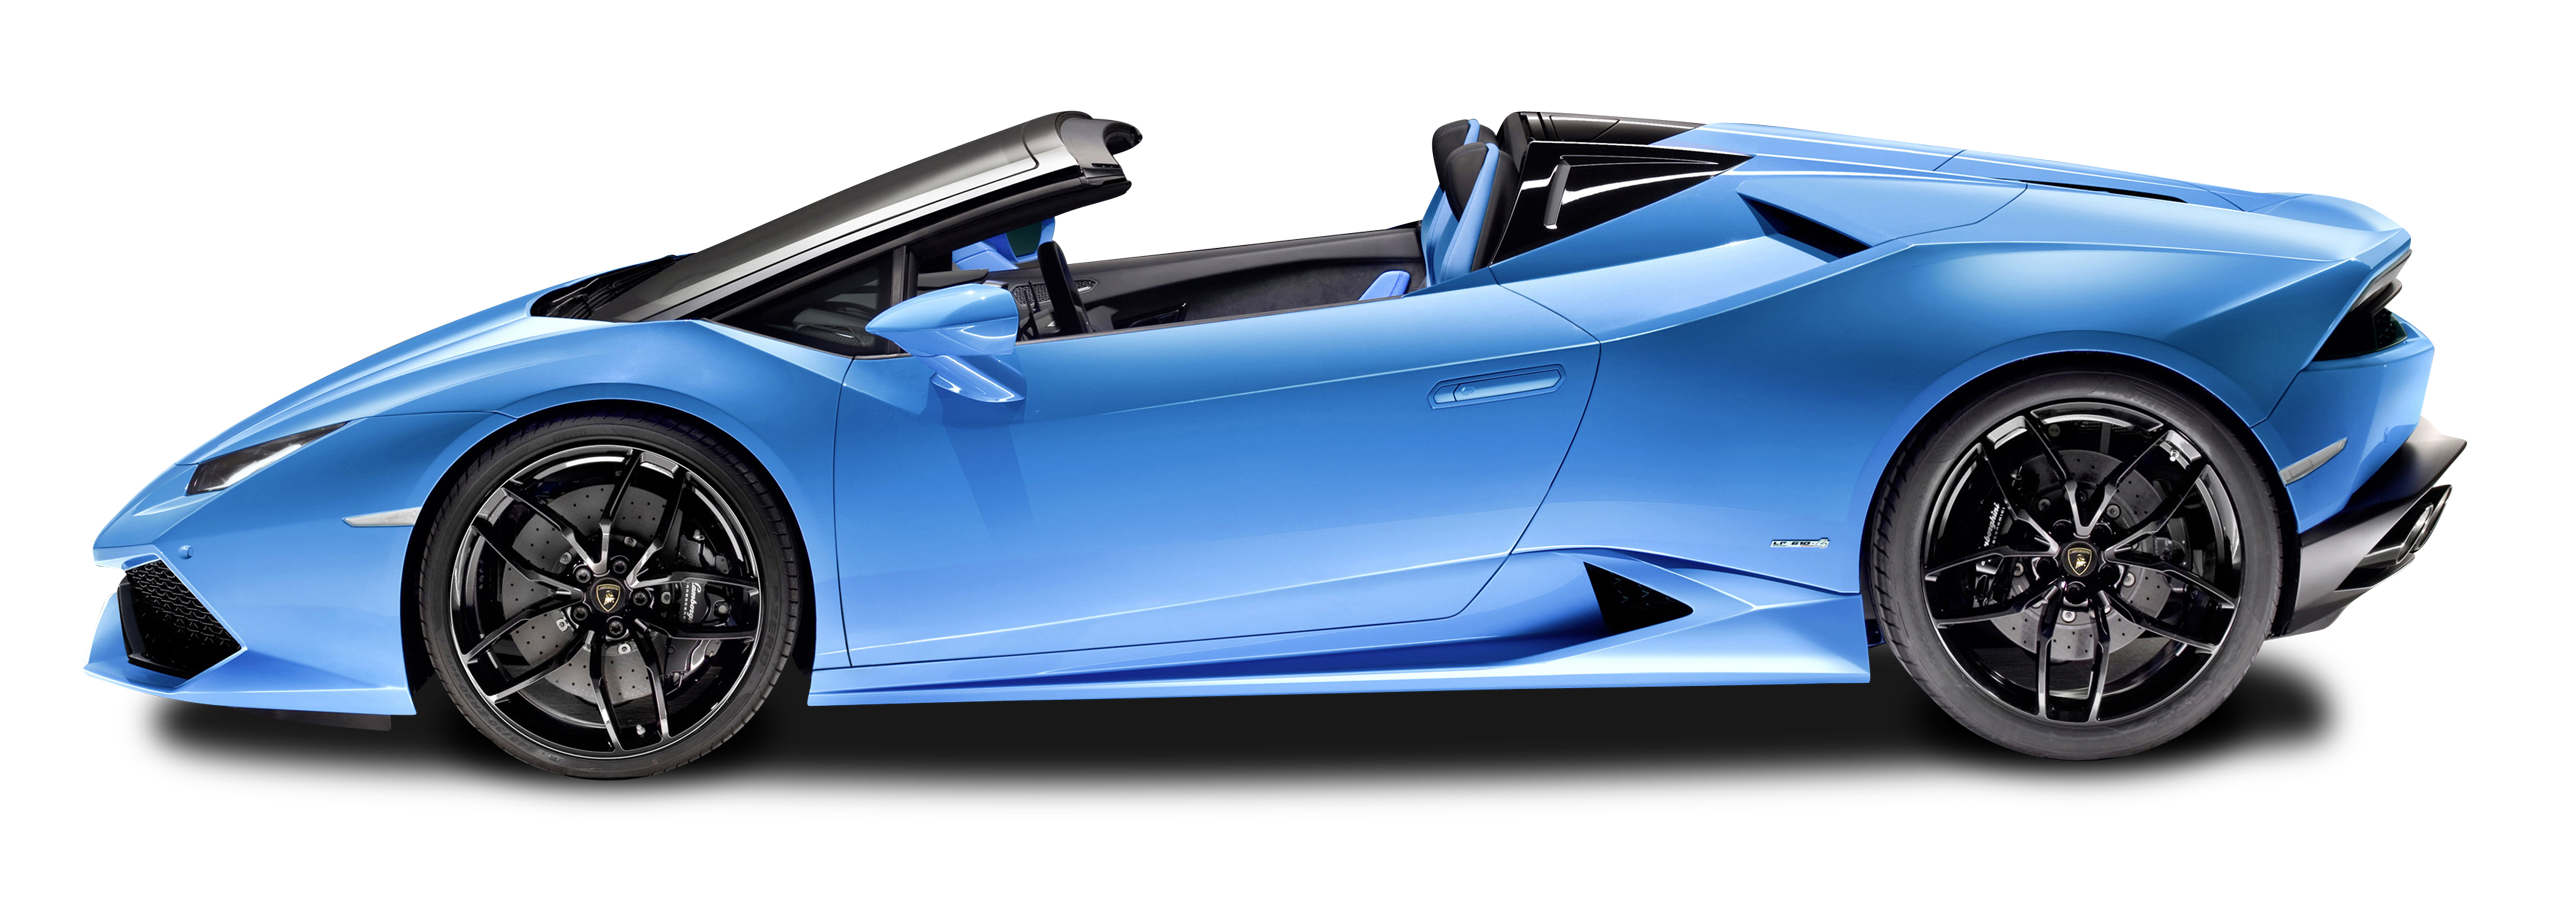 Clipart cars blue.  collection of sports